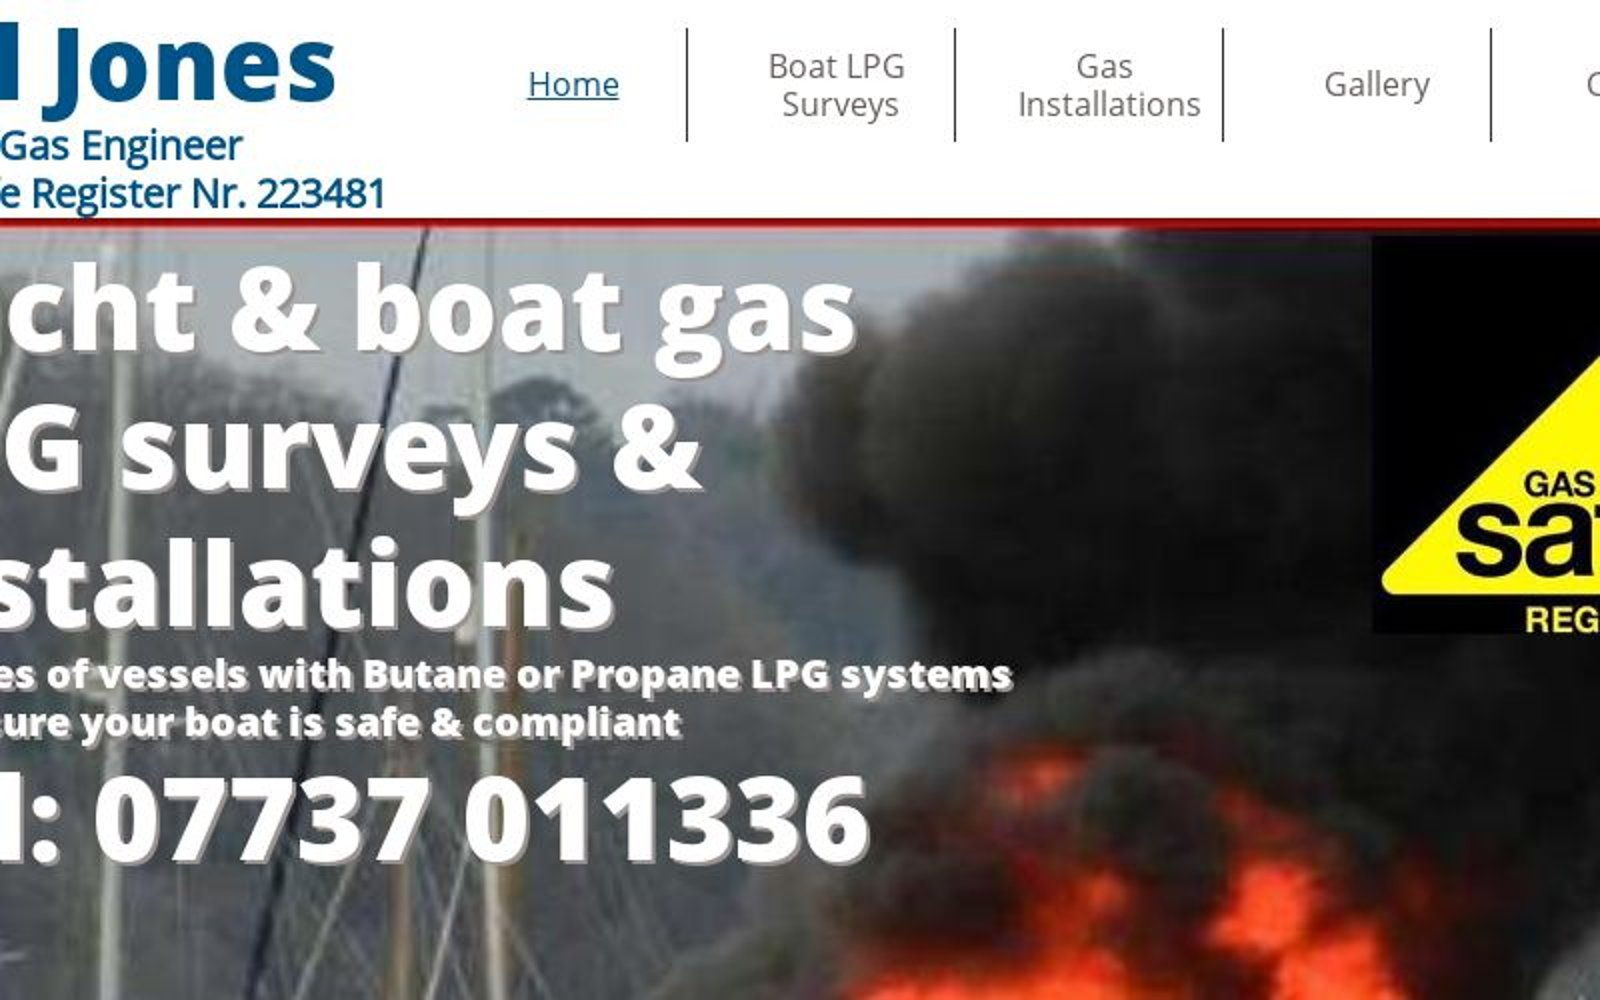 Bill Jones Marine Gas Engineer